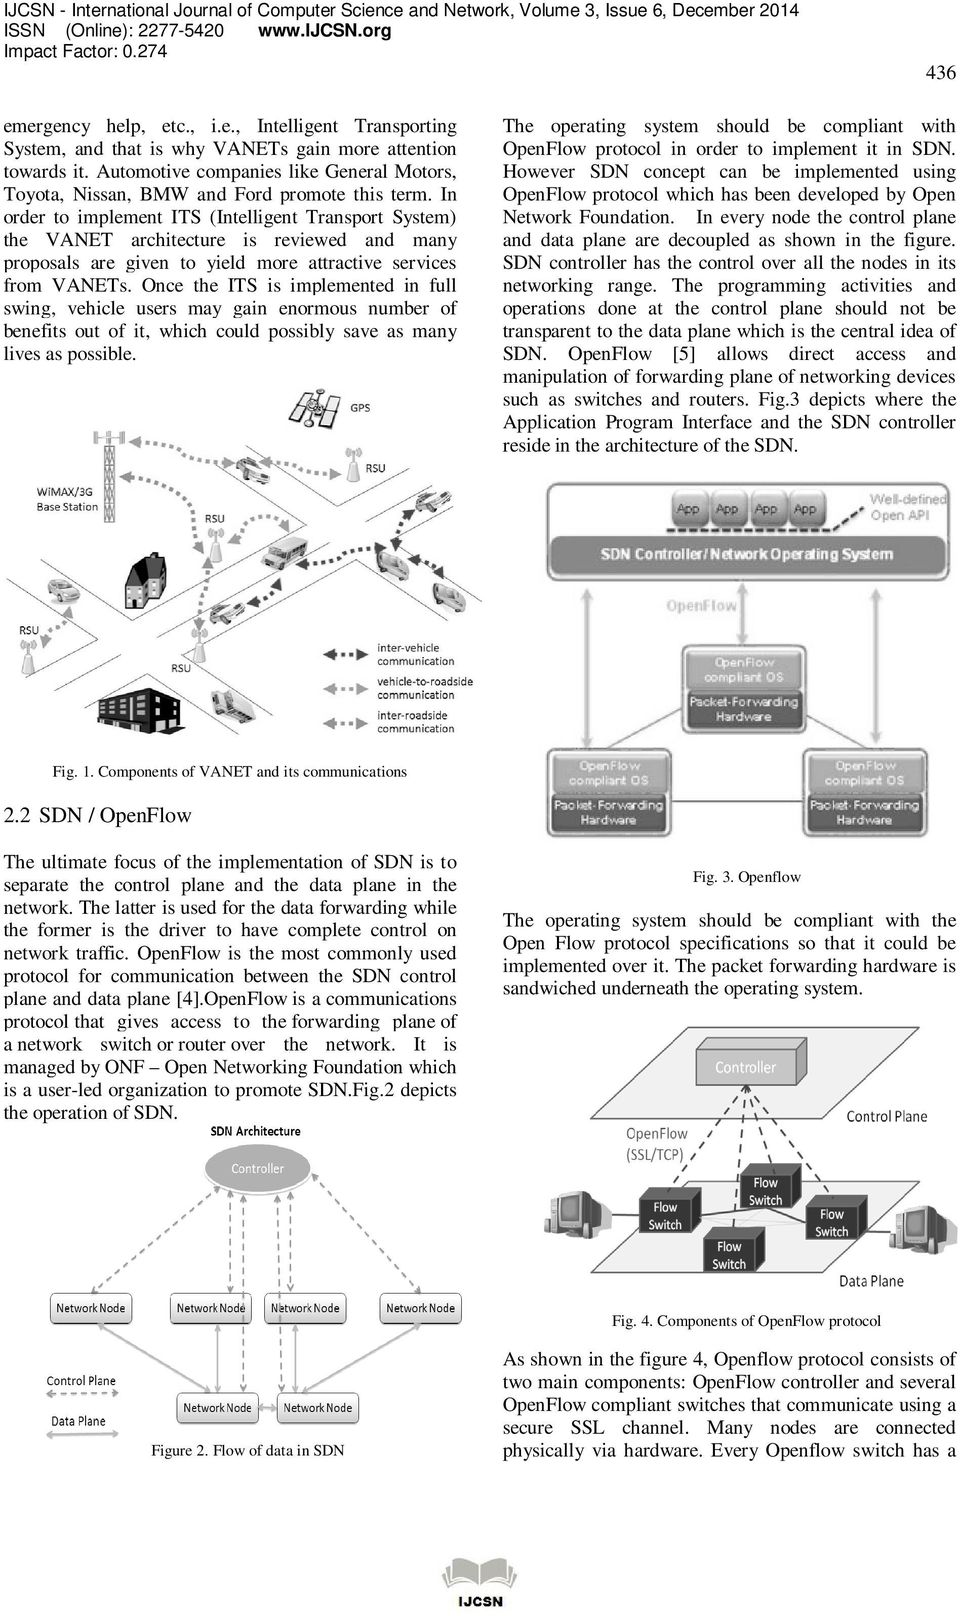 security ad hoc networks thesis Vehicular networks – security,  vehicular ad hoc networks  the scope of this thesis work is to study vehicular network security issues and their.